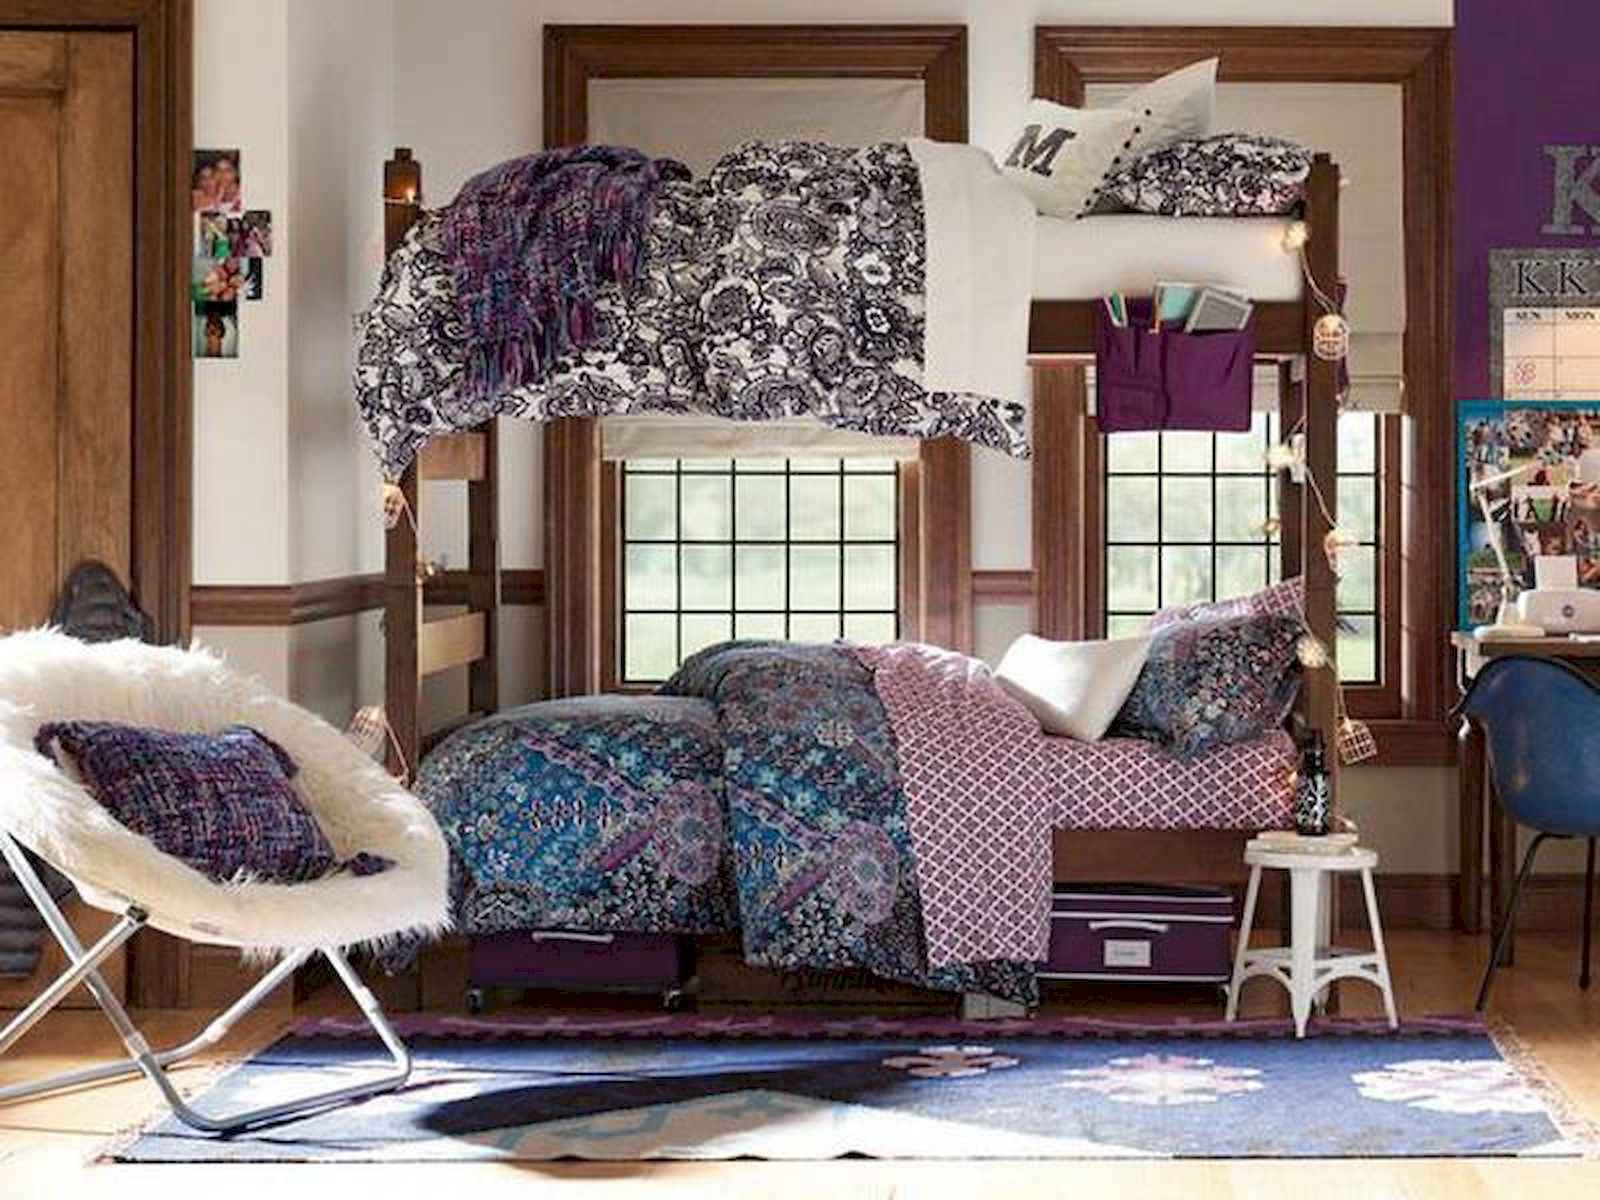 60 Gorgeous College Dorm Room Decorating Ideas And Makeover (1)